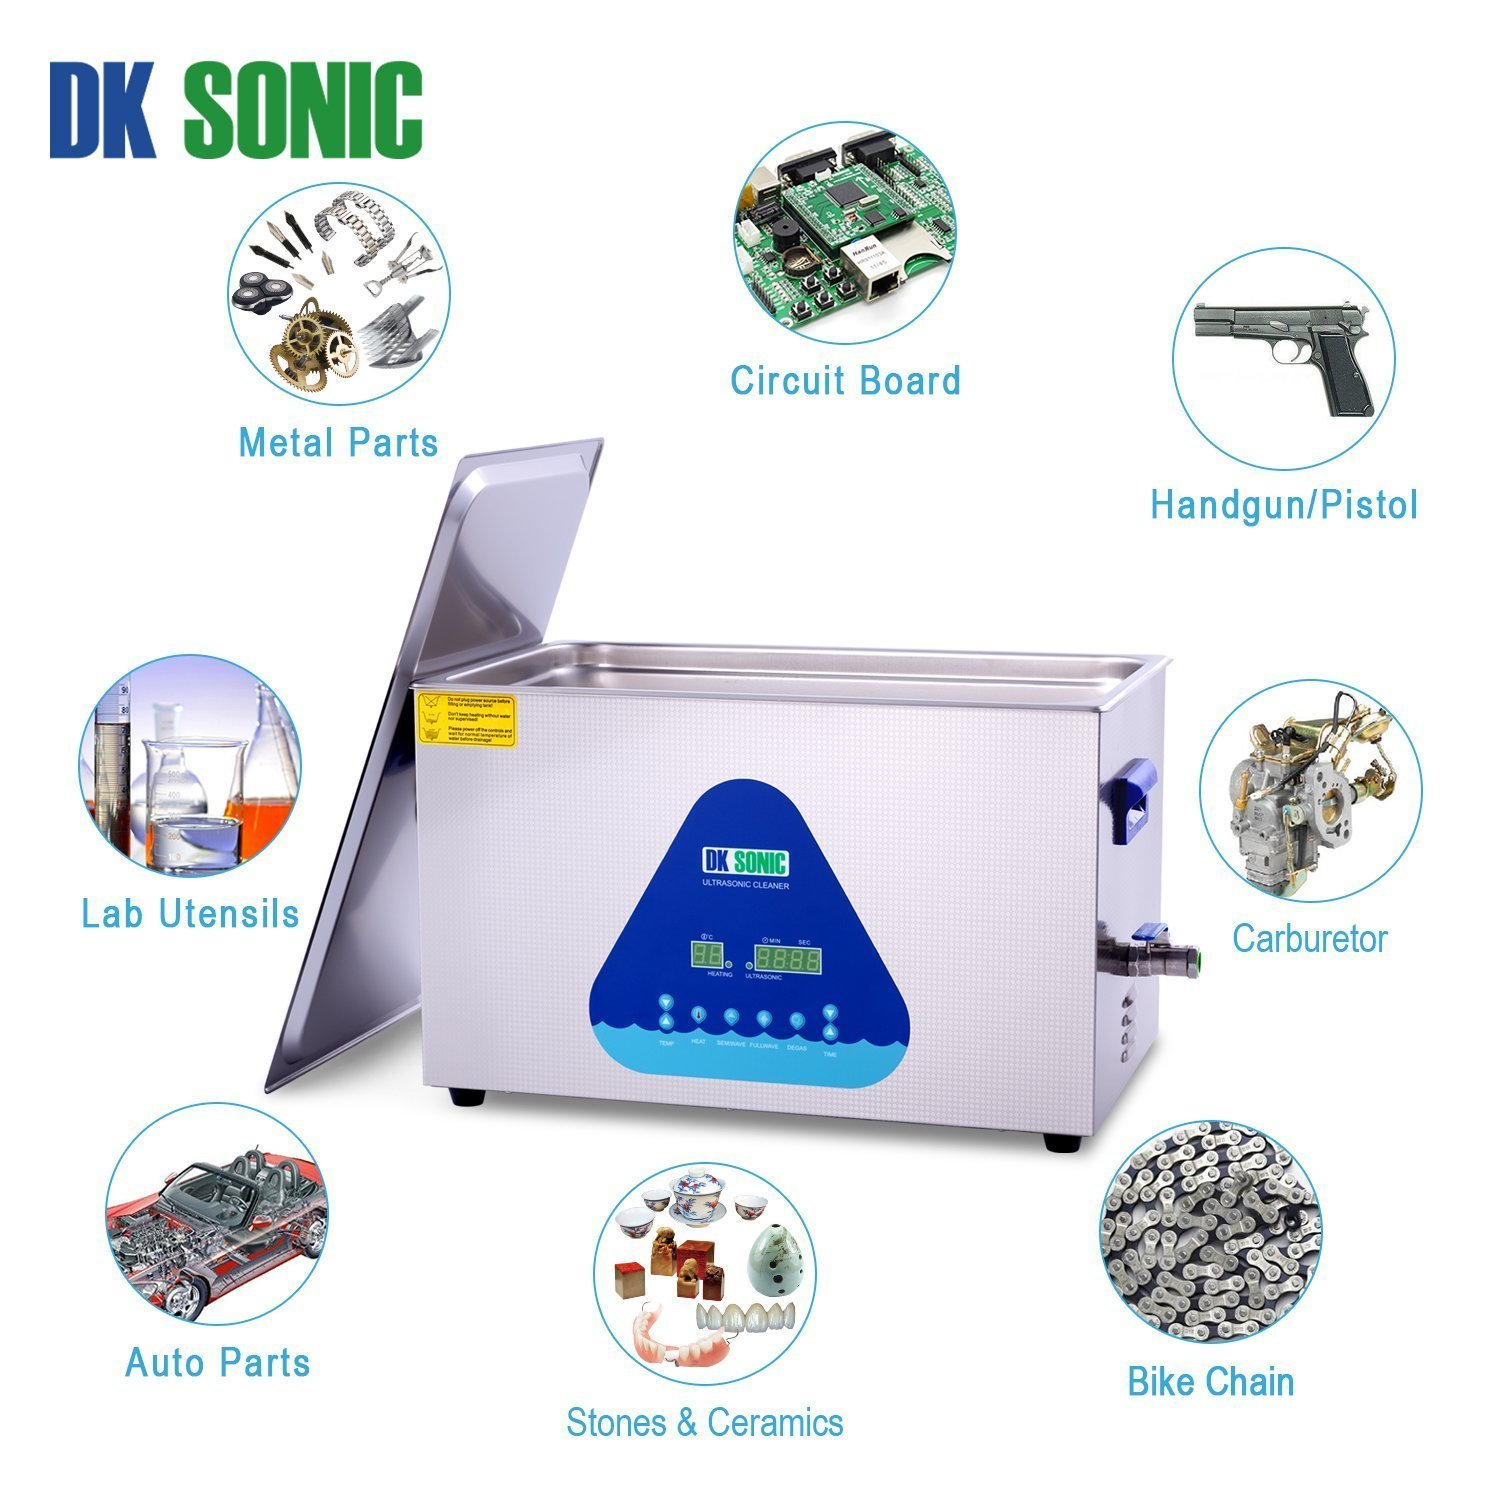 Lab Digital Ultrasonic Carburetor Cleaner Heated - DK SONIC 22L 480W Ultrasonic Gun Cleaner for Parts Jewelry Brass Eyeglass Ring Fuel Injector Glasses Record Diamond Circuit Board 28/40KHz by DK SONIC (Image #6)